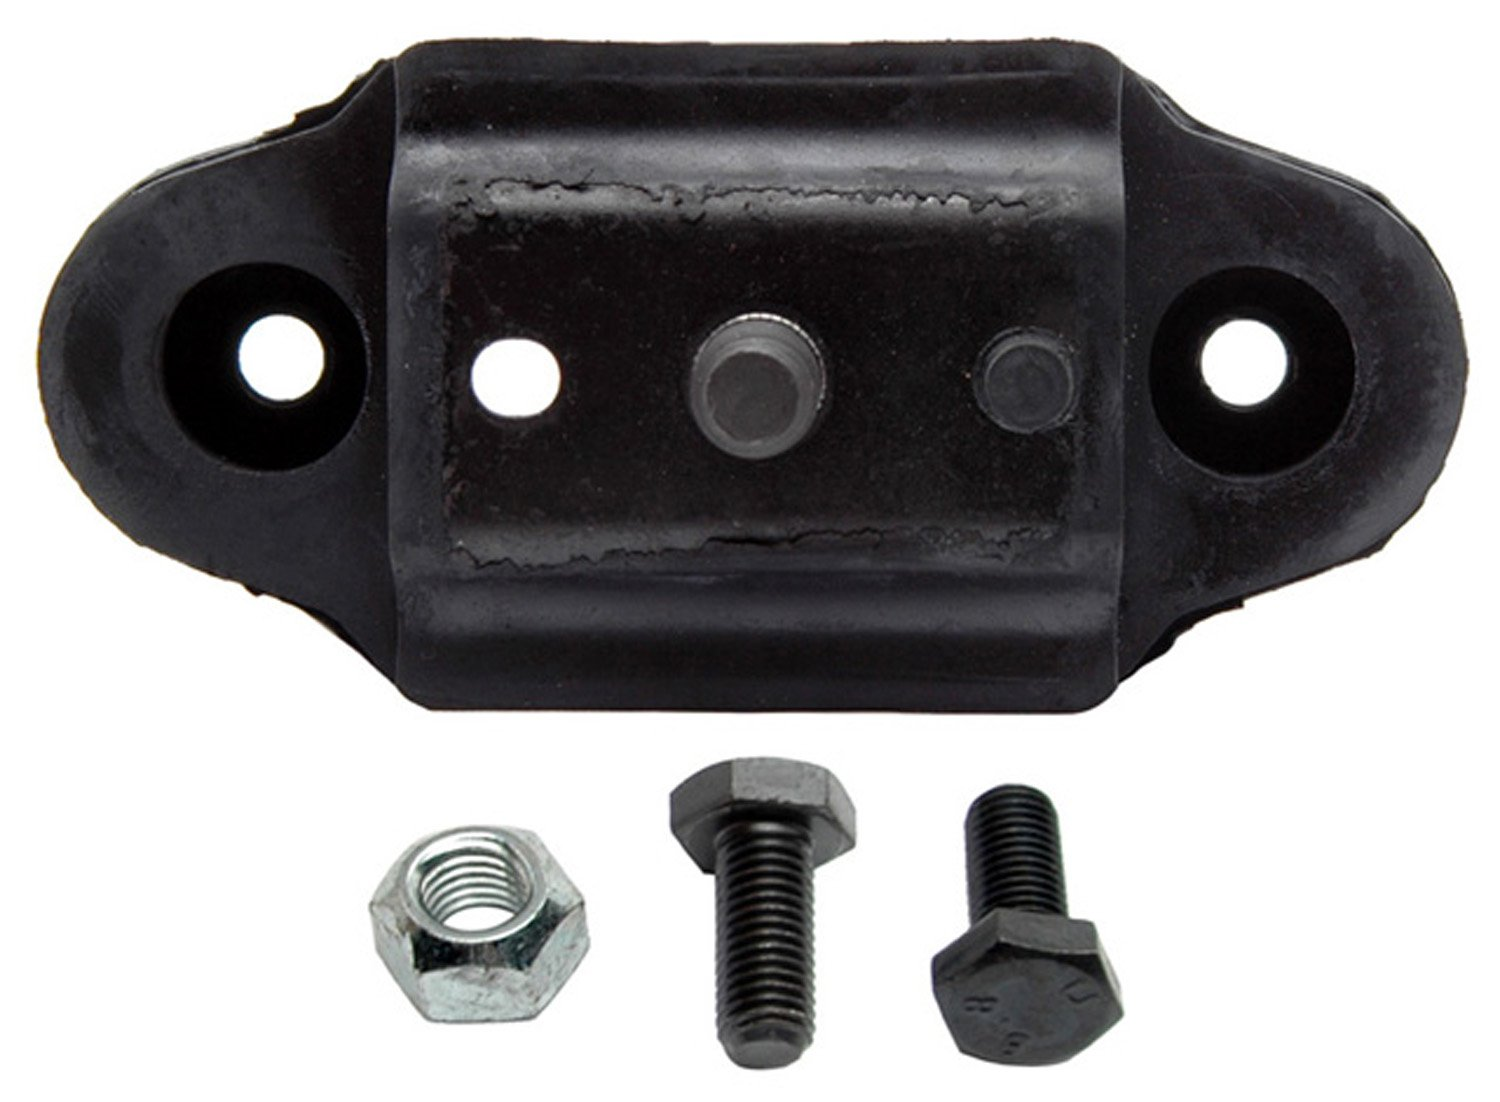 ACDelco 45E1200 Professional Front Torsion Bar Mount Kit with Mount, Nut, and Bolts